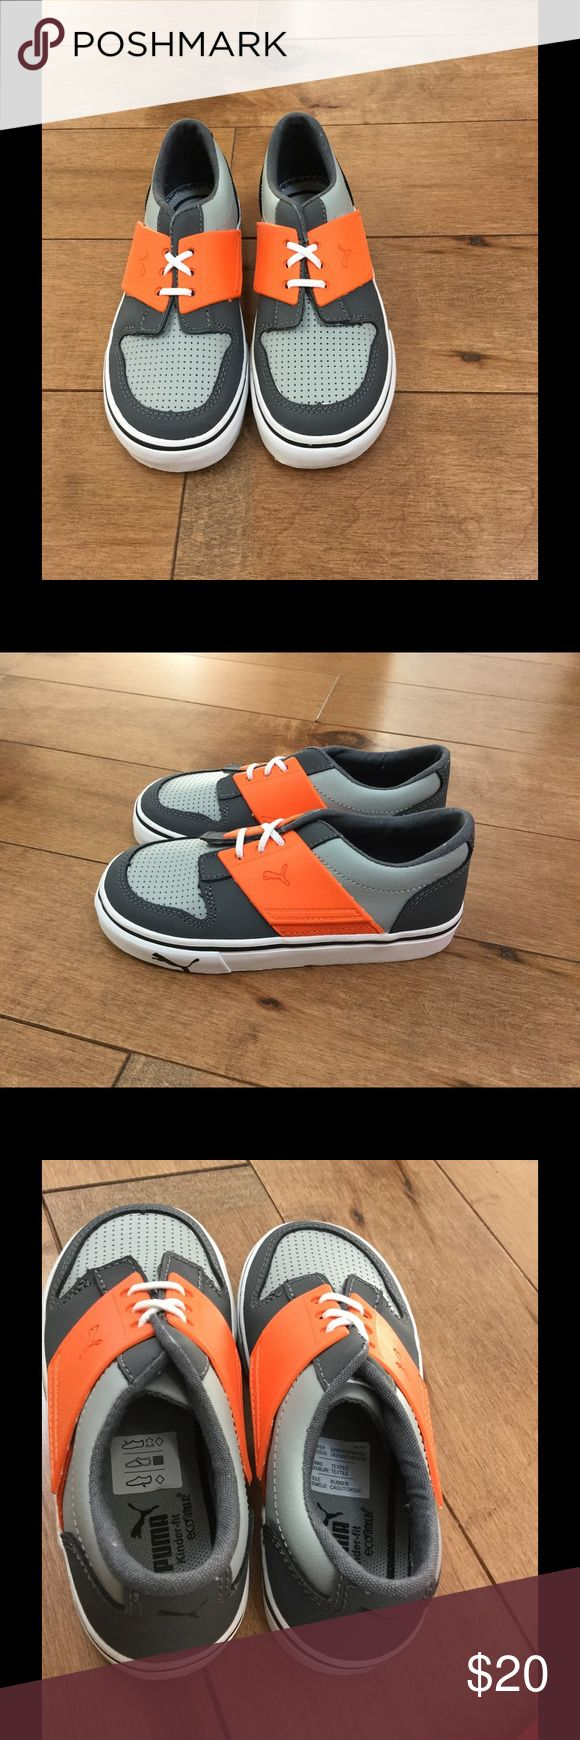 NWT Puma El Ace boys shoes/sneakers Brand new size 10T boys Puma shoes. Comes with original box and packaging. Puma Shoes Sneakers